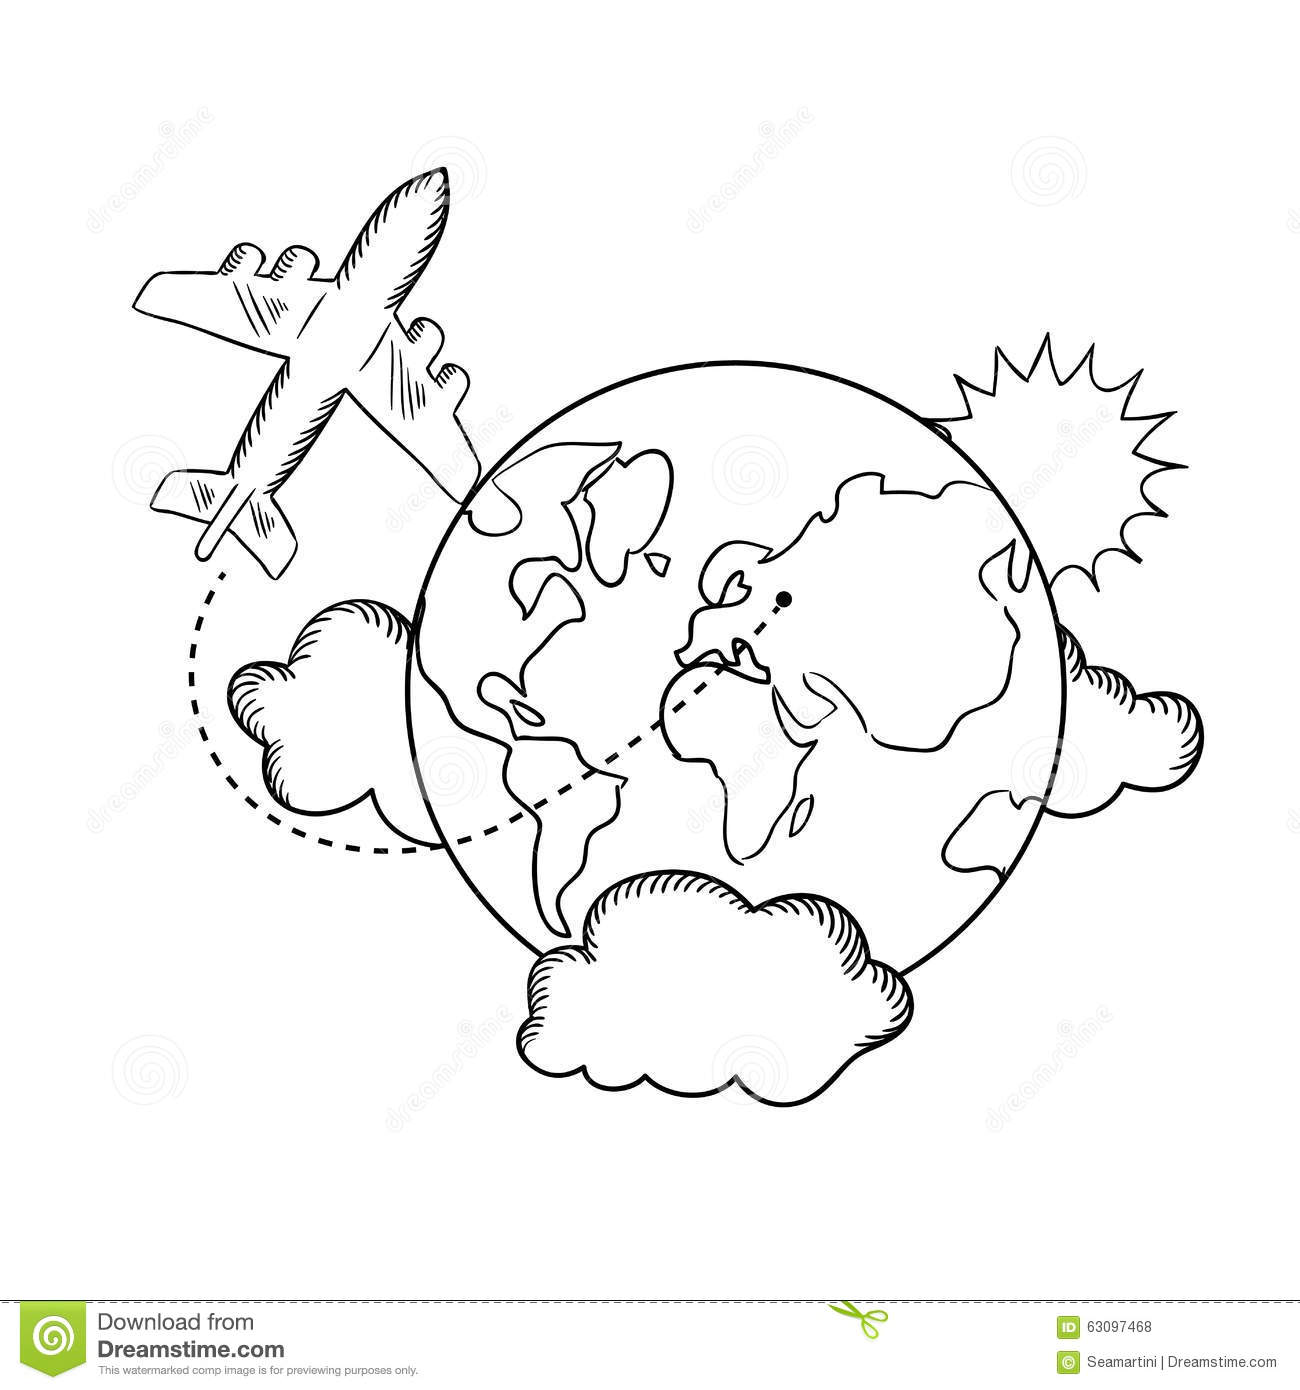 Air Travel Around The Earth Sketch